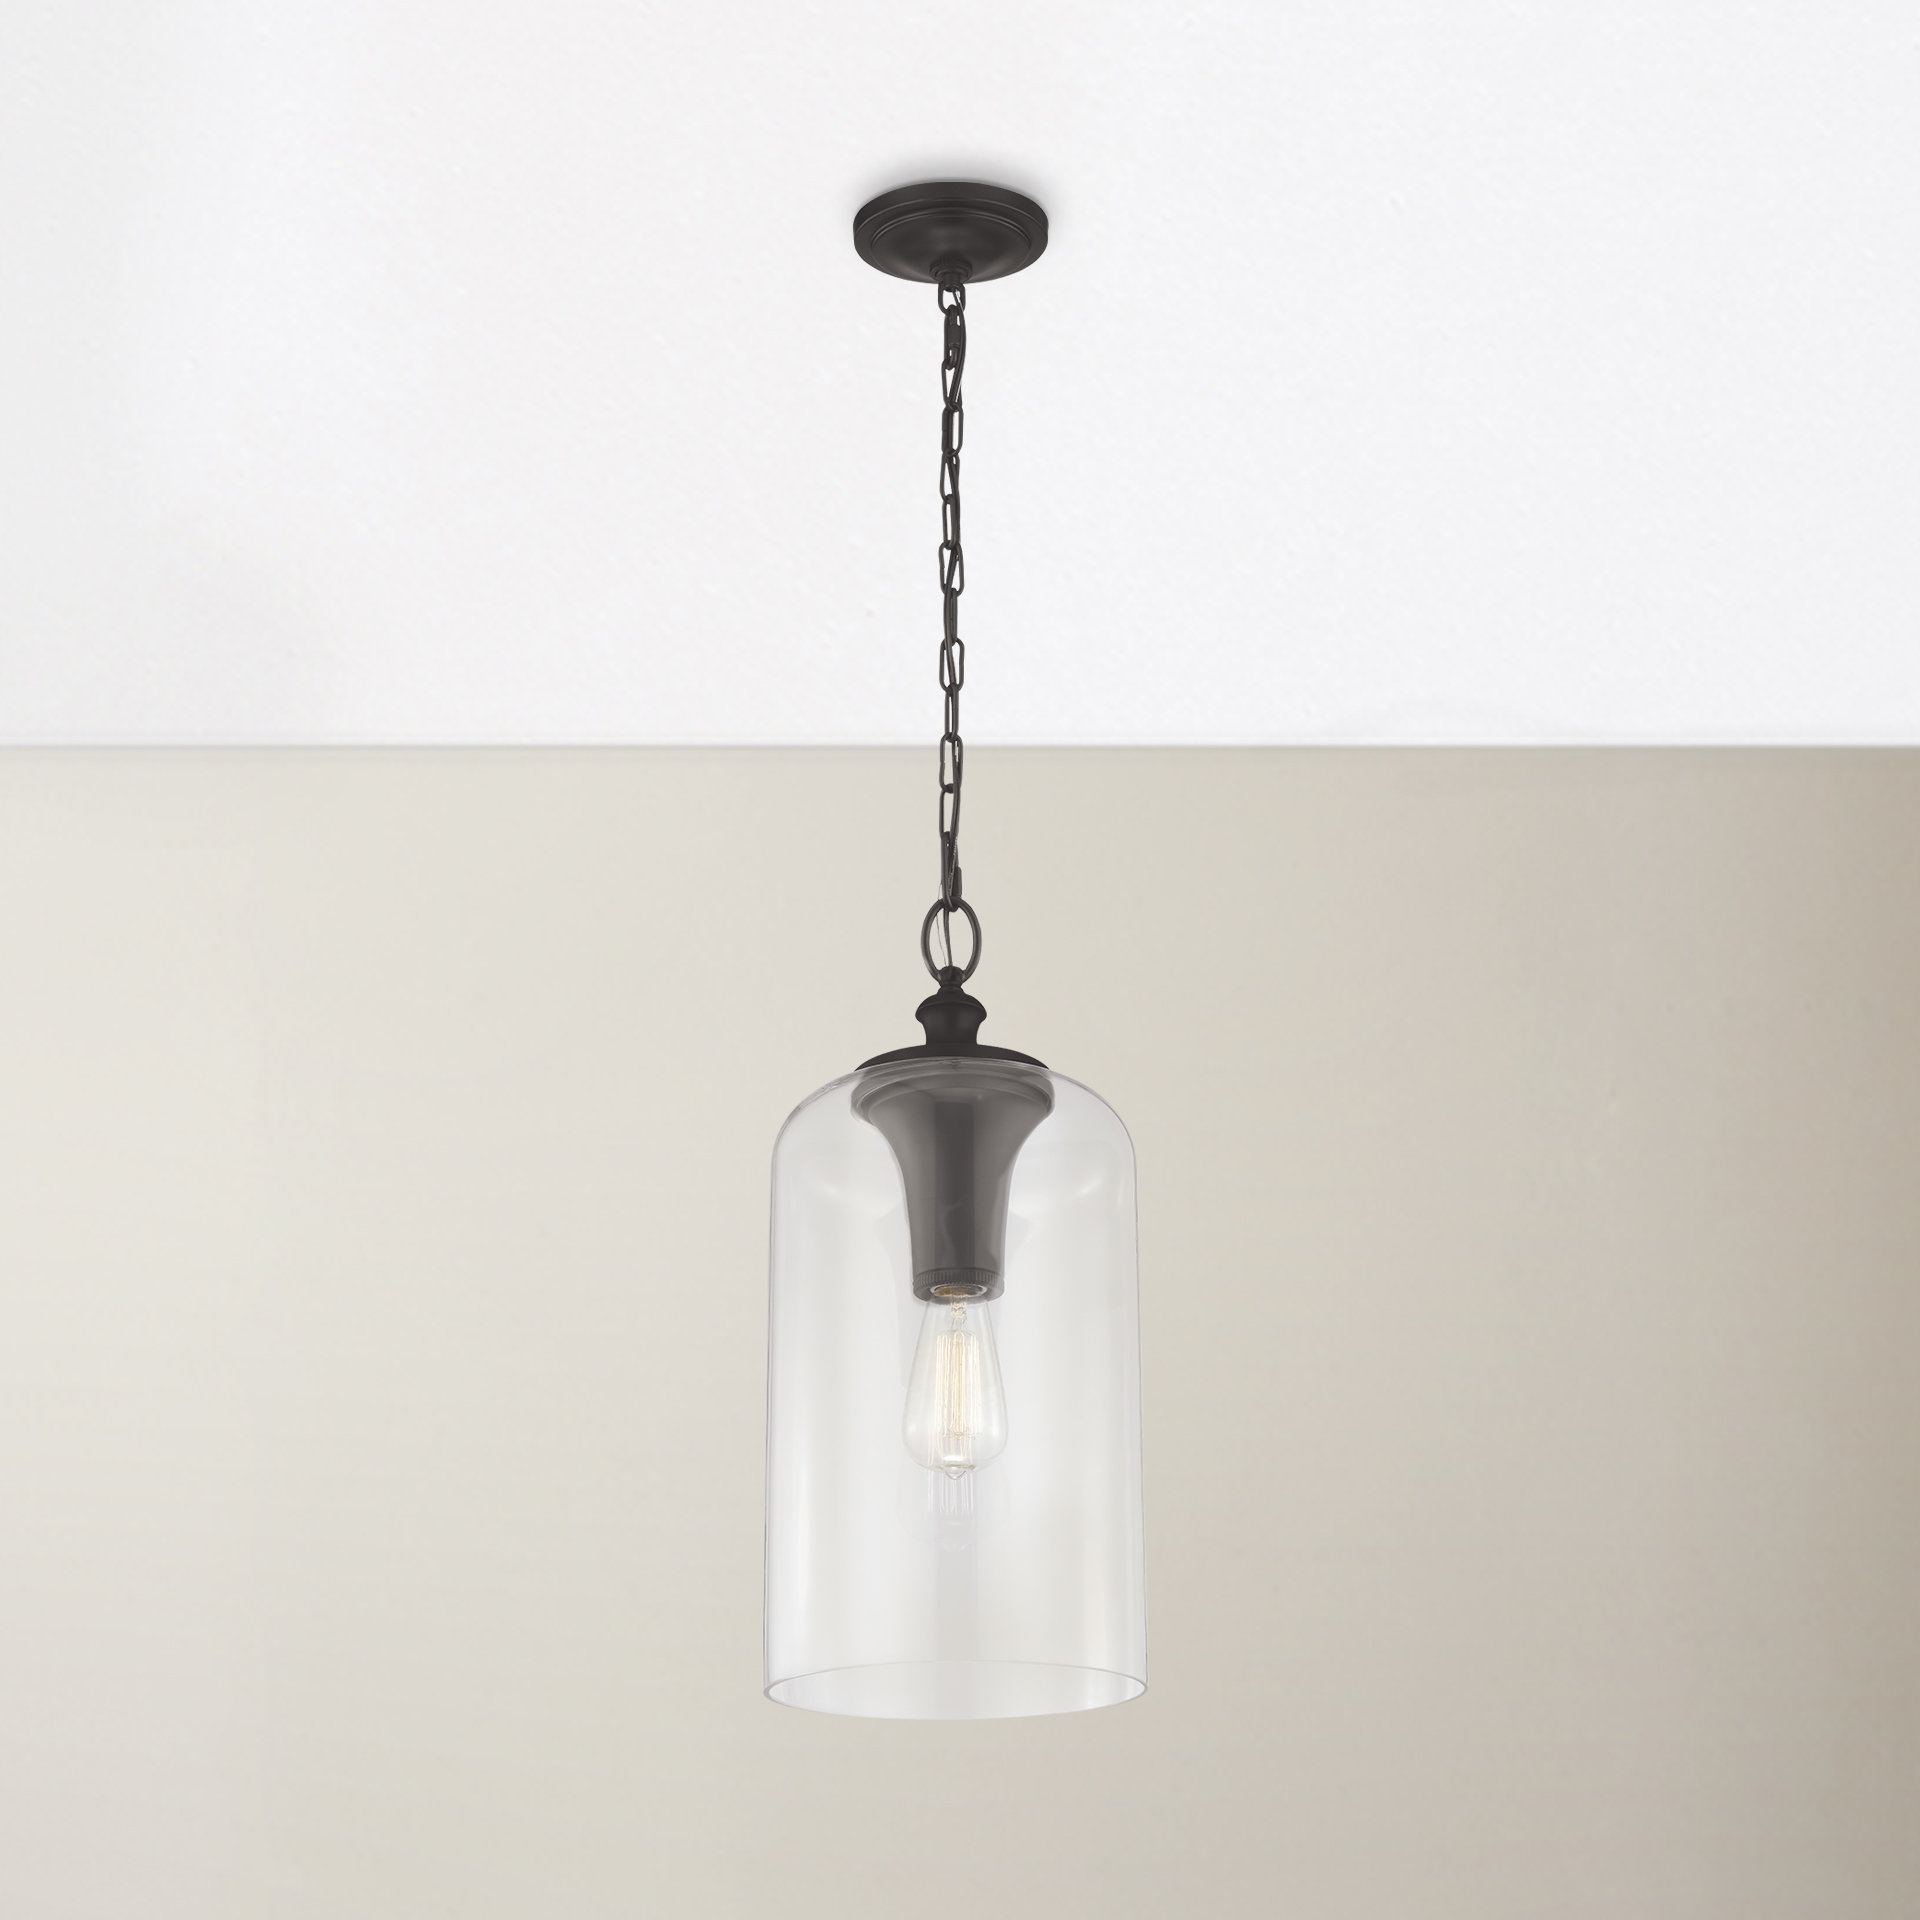 Preferred Nolan 1 Light Single Cylinder Pendant Pertaining To Nolan 1 Light Single Cylinder Pendants (View 16 of 20)